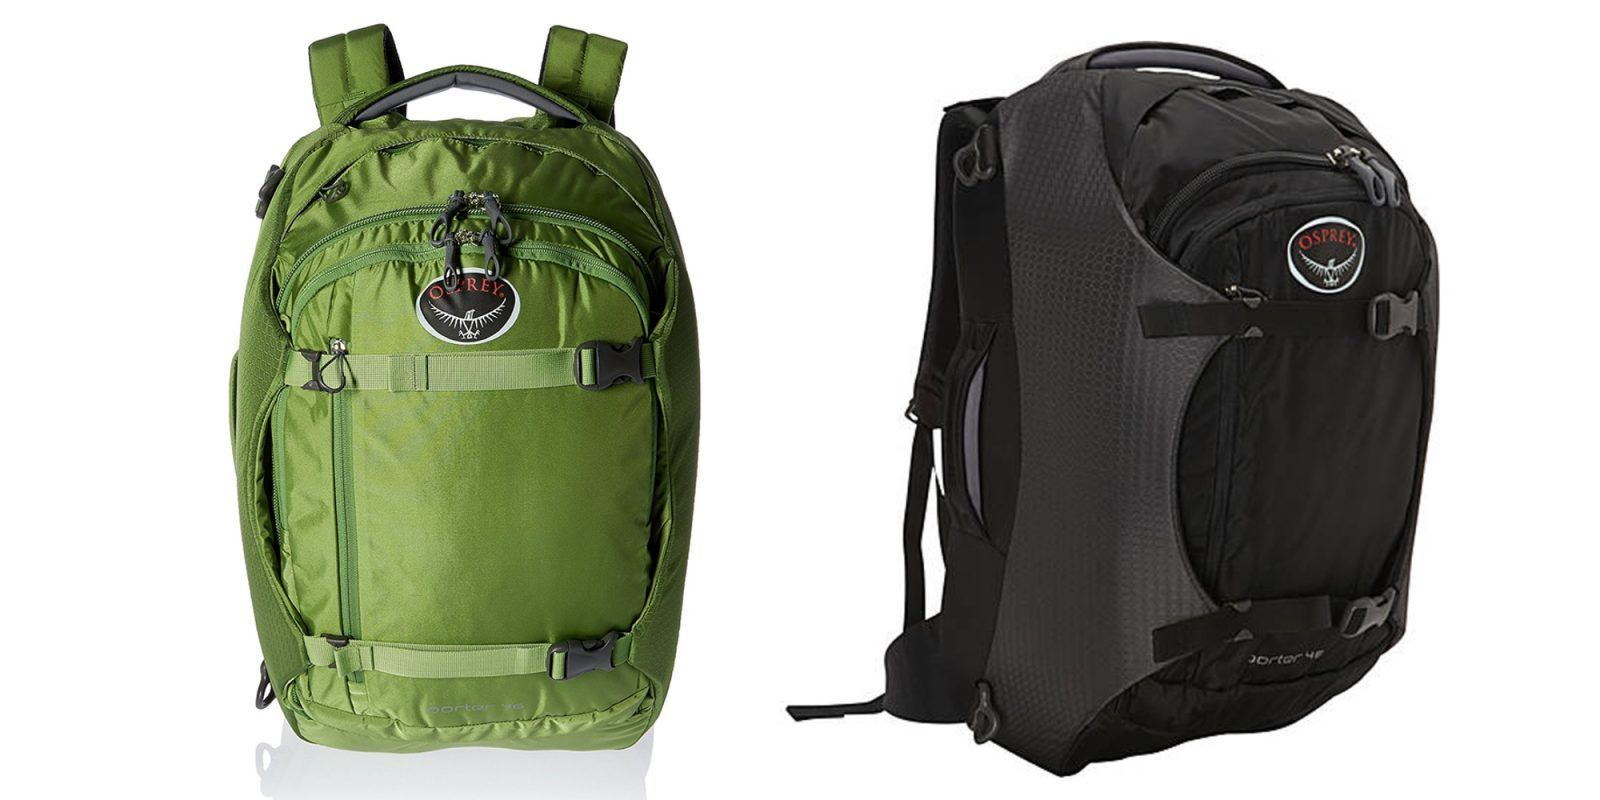 The Osprey Farpoint 40 vs Porter 46 review